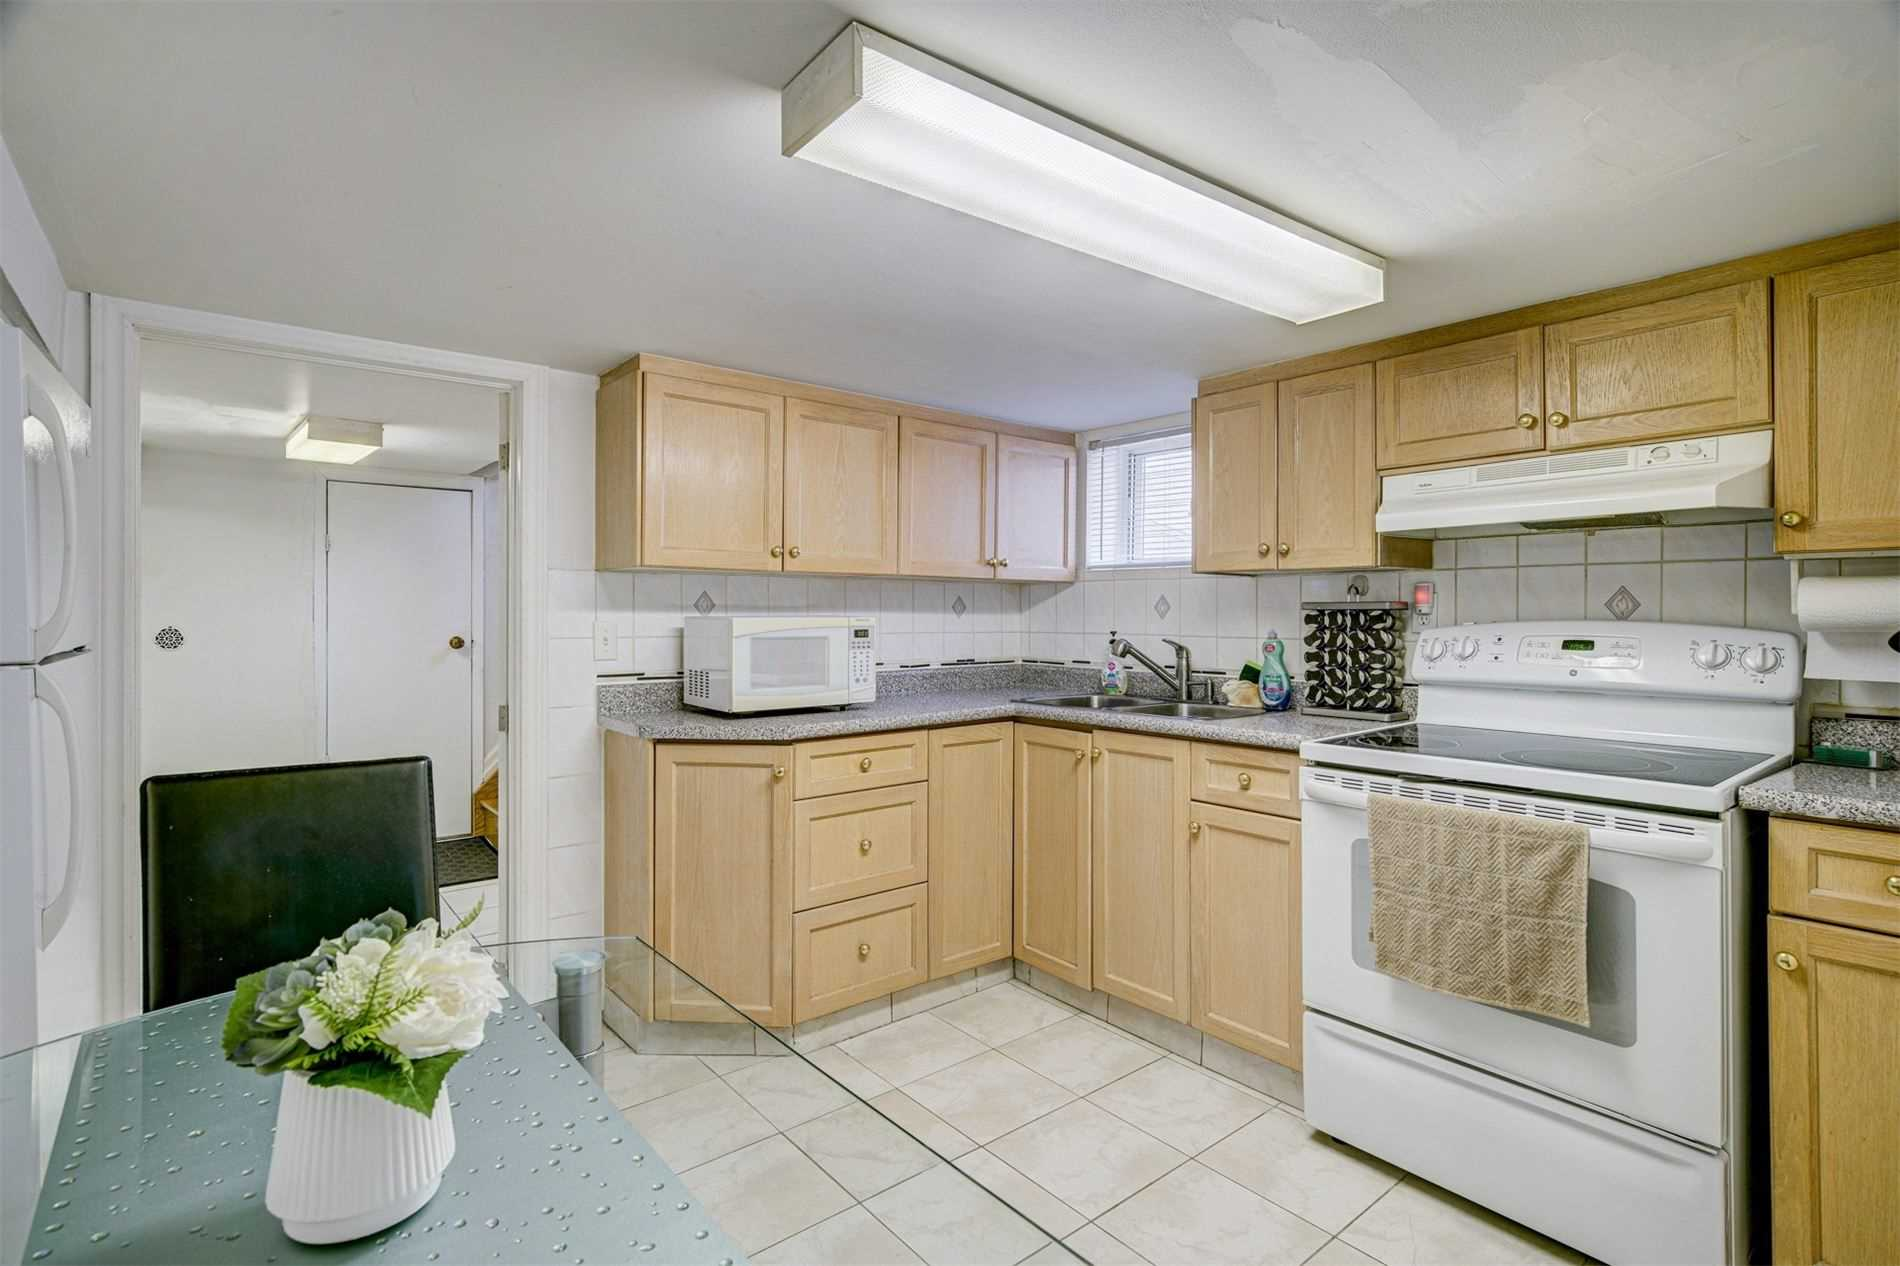 554 Caledonia Rd - Caledonia-Fairbank Detached for sale, 2 Bedrooms (W5305900) - #23